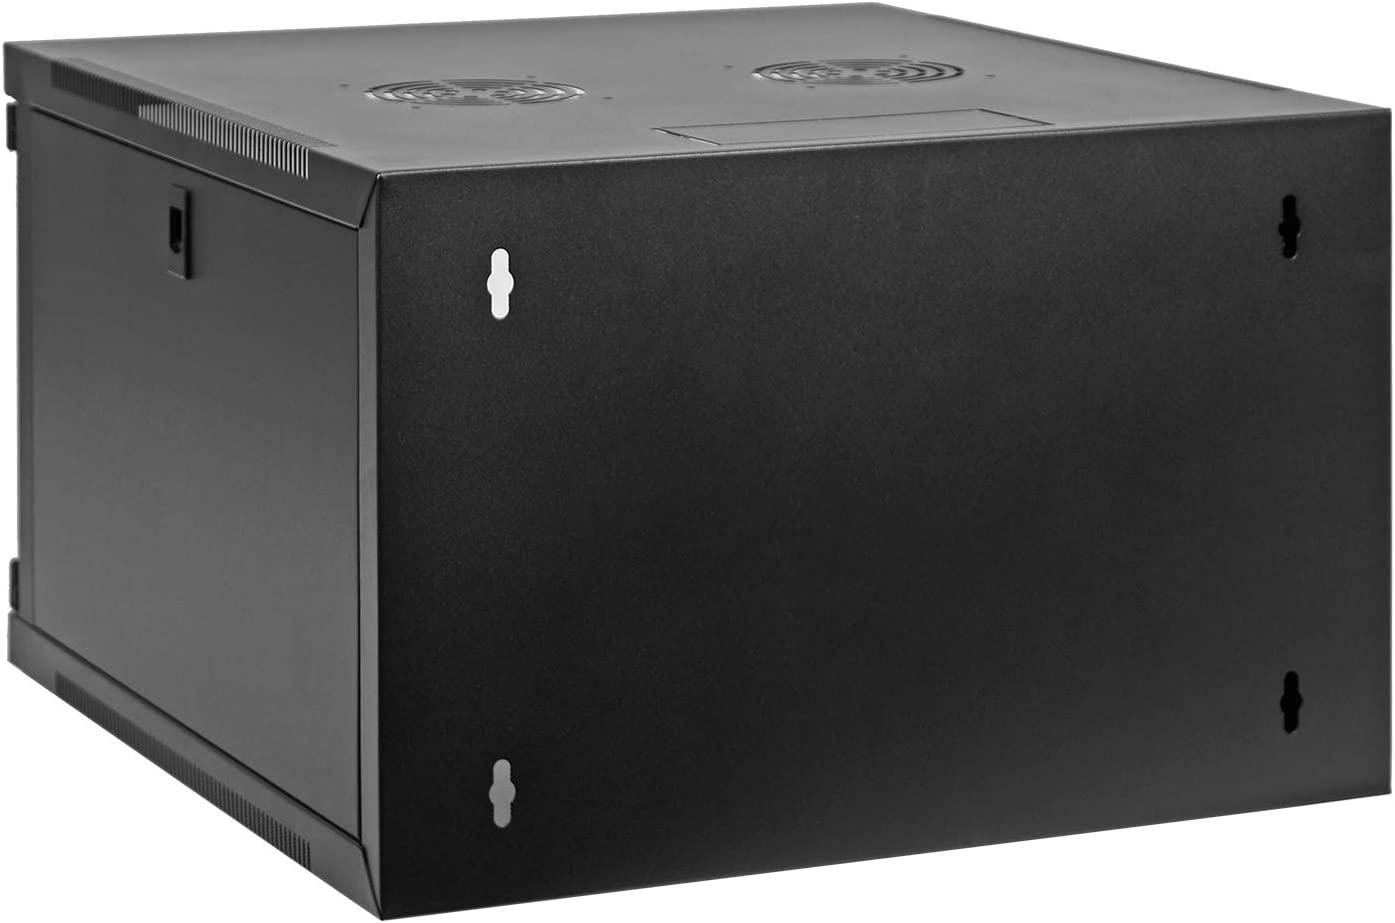 Aeons 6U Classic Wall Mount 19-inch IT Network Cabinet Enclosure Server Rack 20-inch Depth Glass Door Fully Assembled